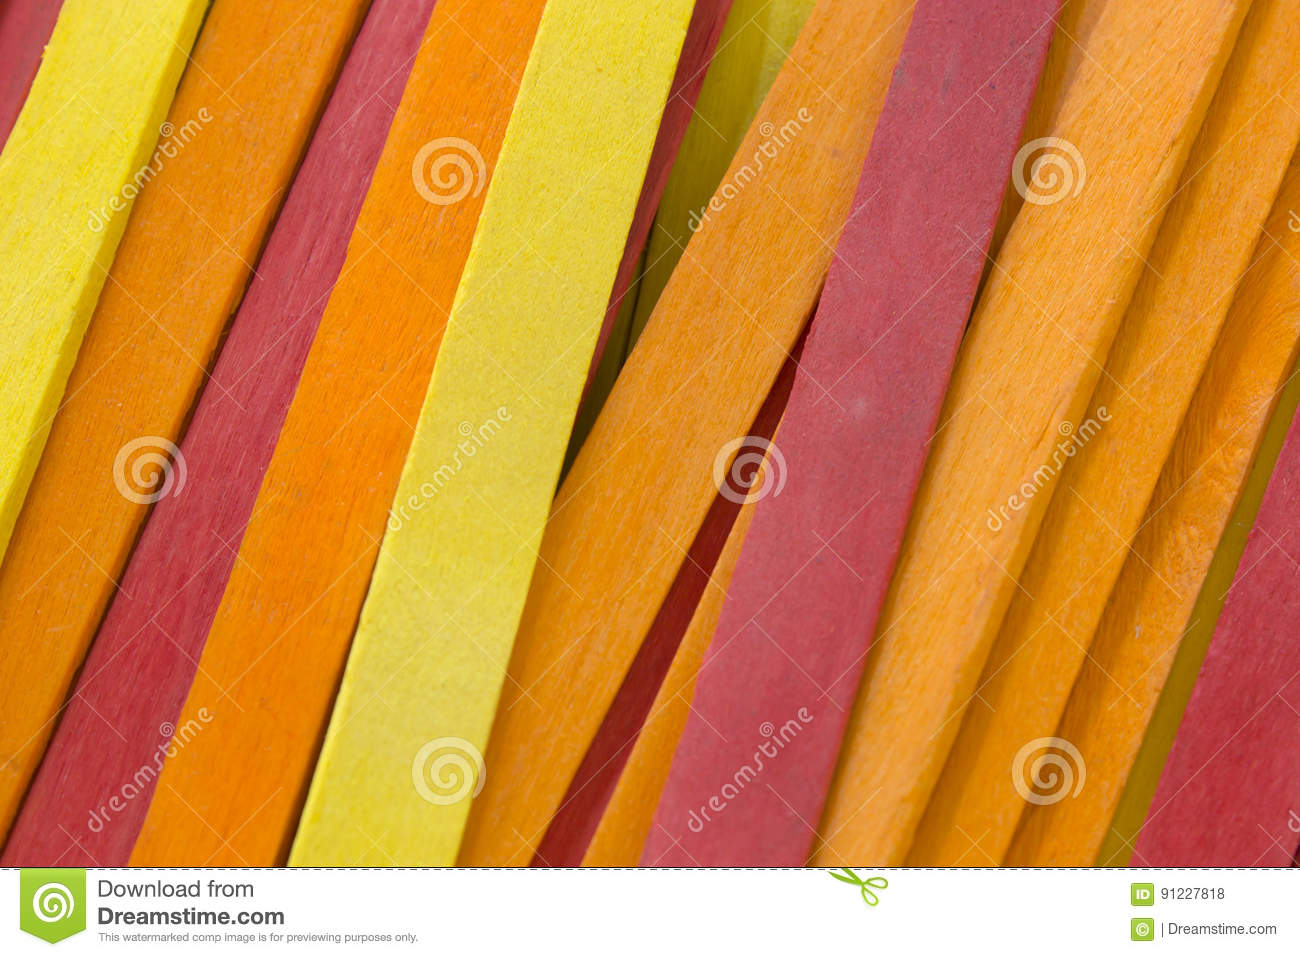 Colored Popsicle Sticks Stock Photos Royalty Free Images